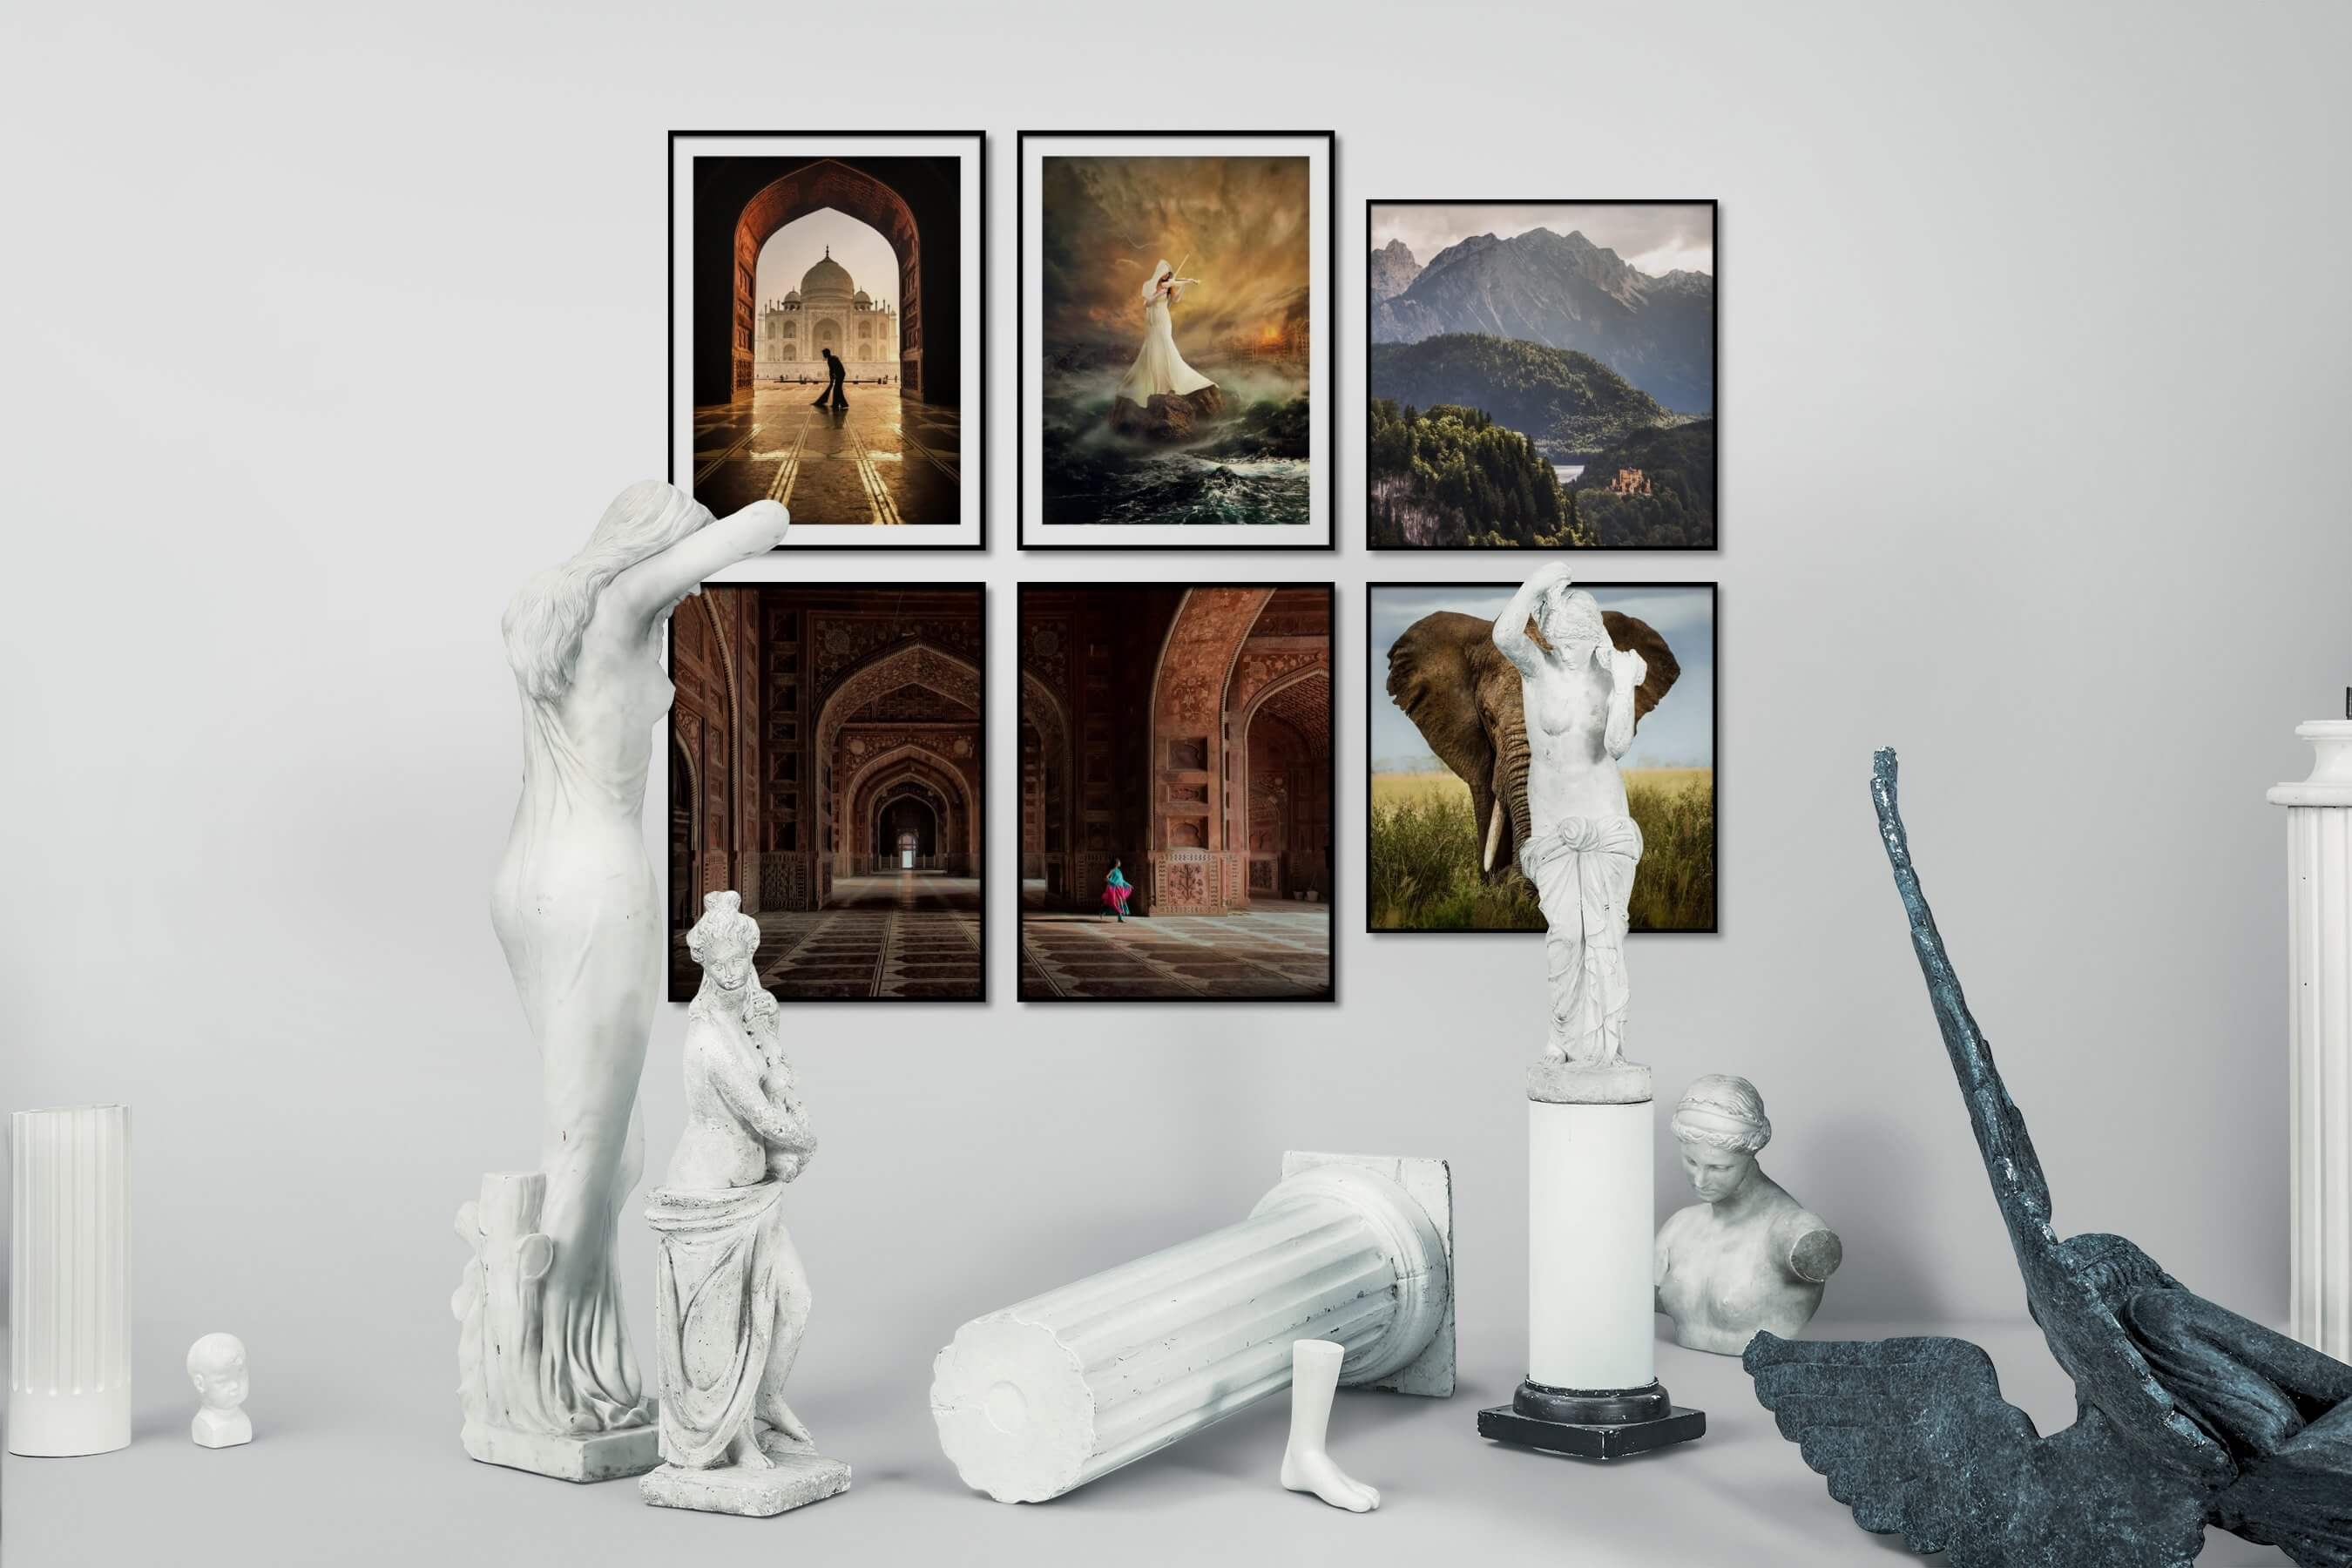 Gallery wall idea with six framed pictures arranged on a wall depicting For the Moderate, Artsy, Nature, and Animals